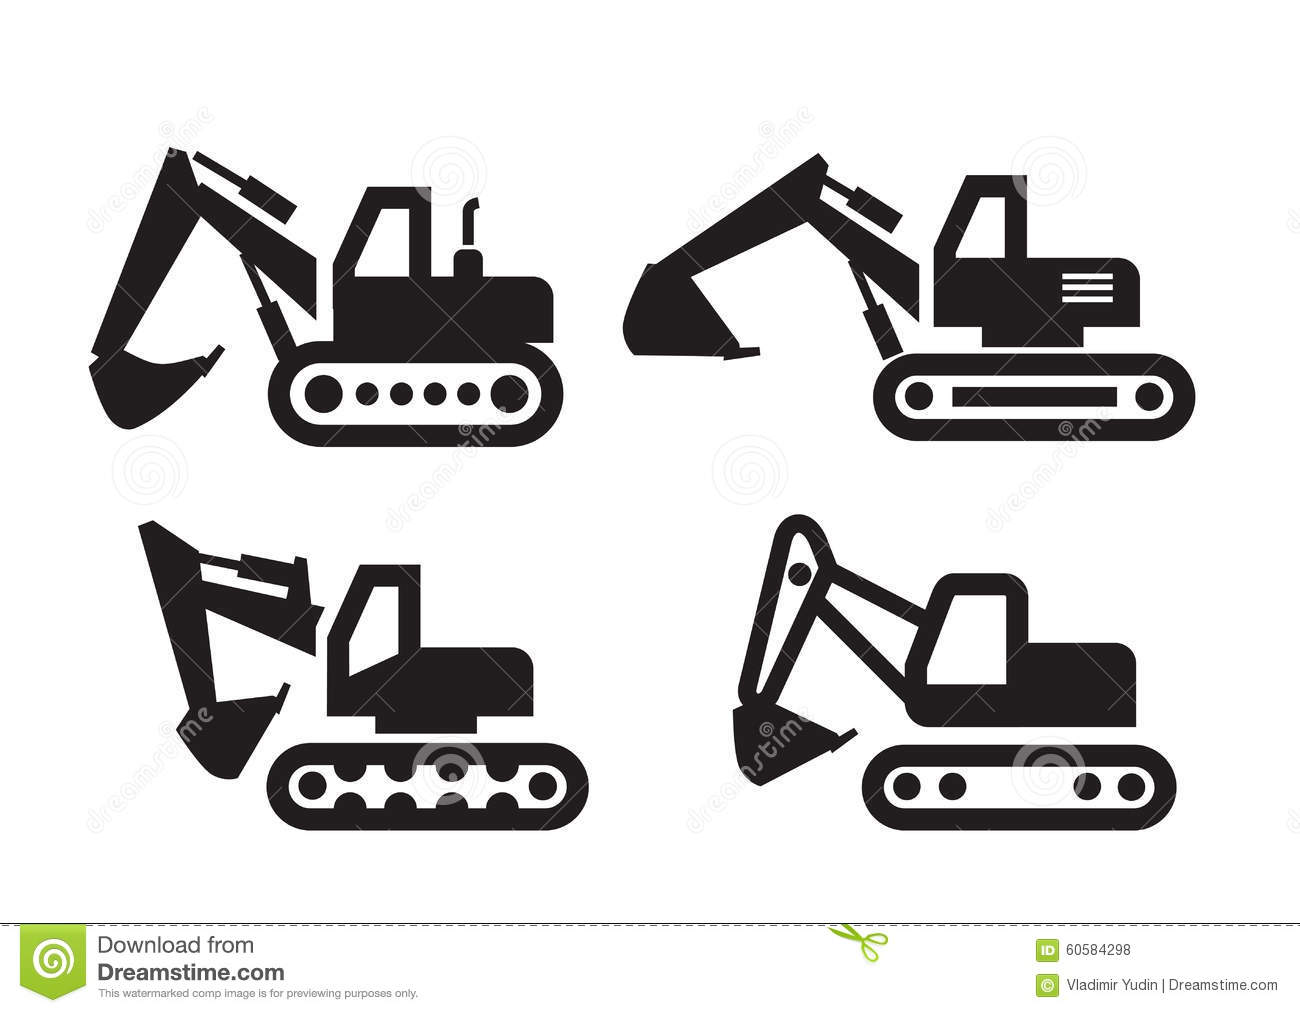 Excavator tracks clipart - Clipground